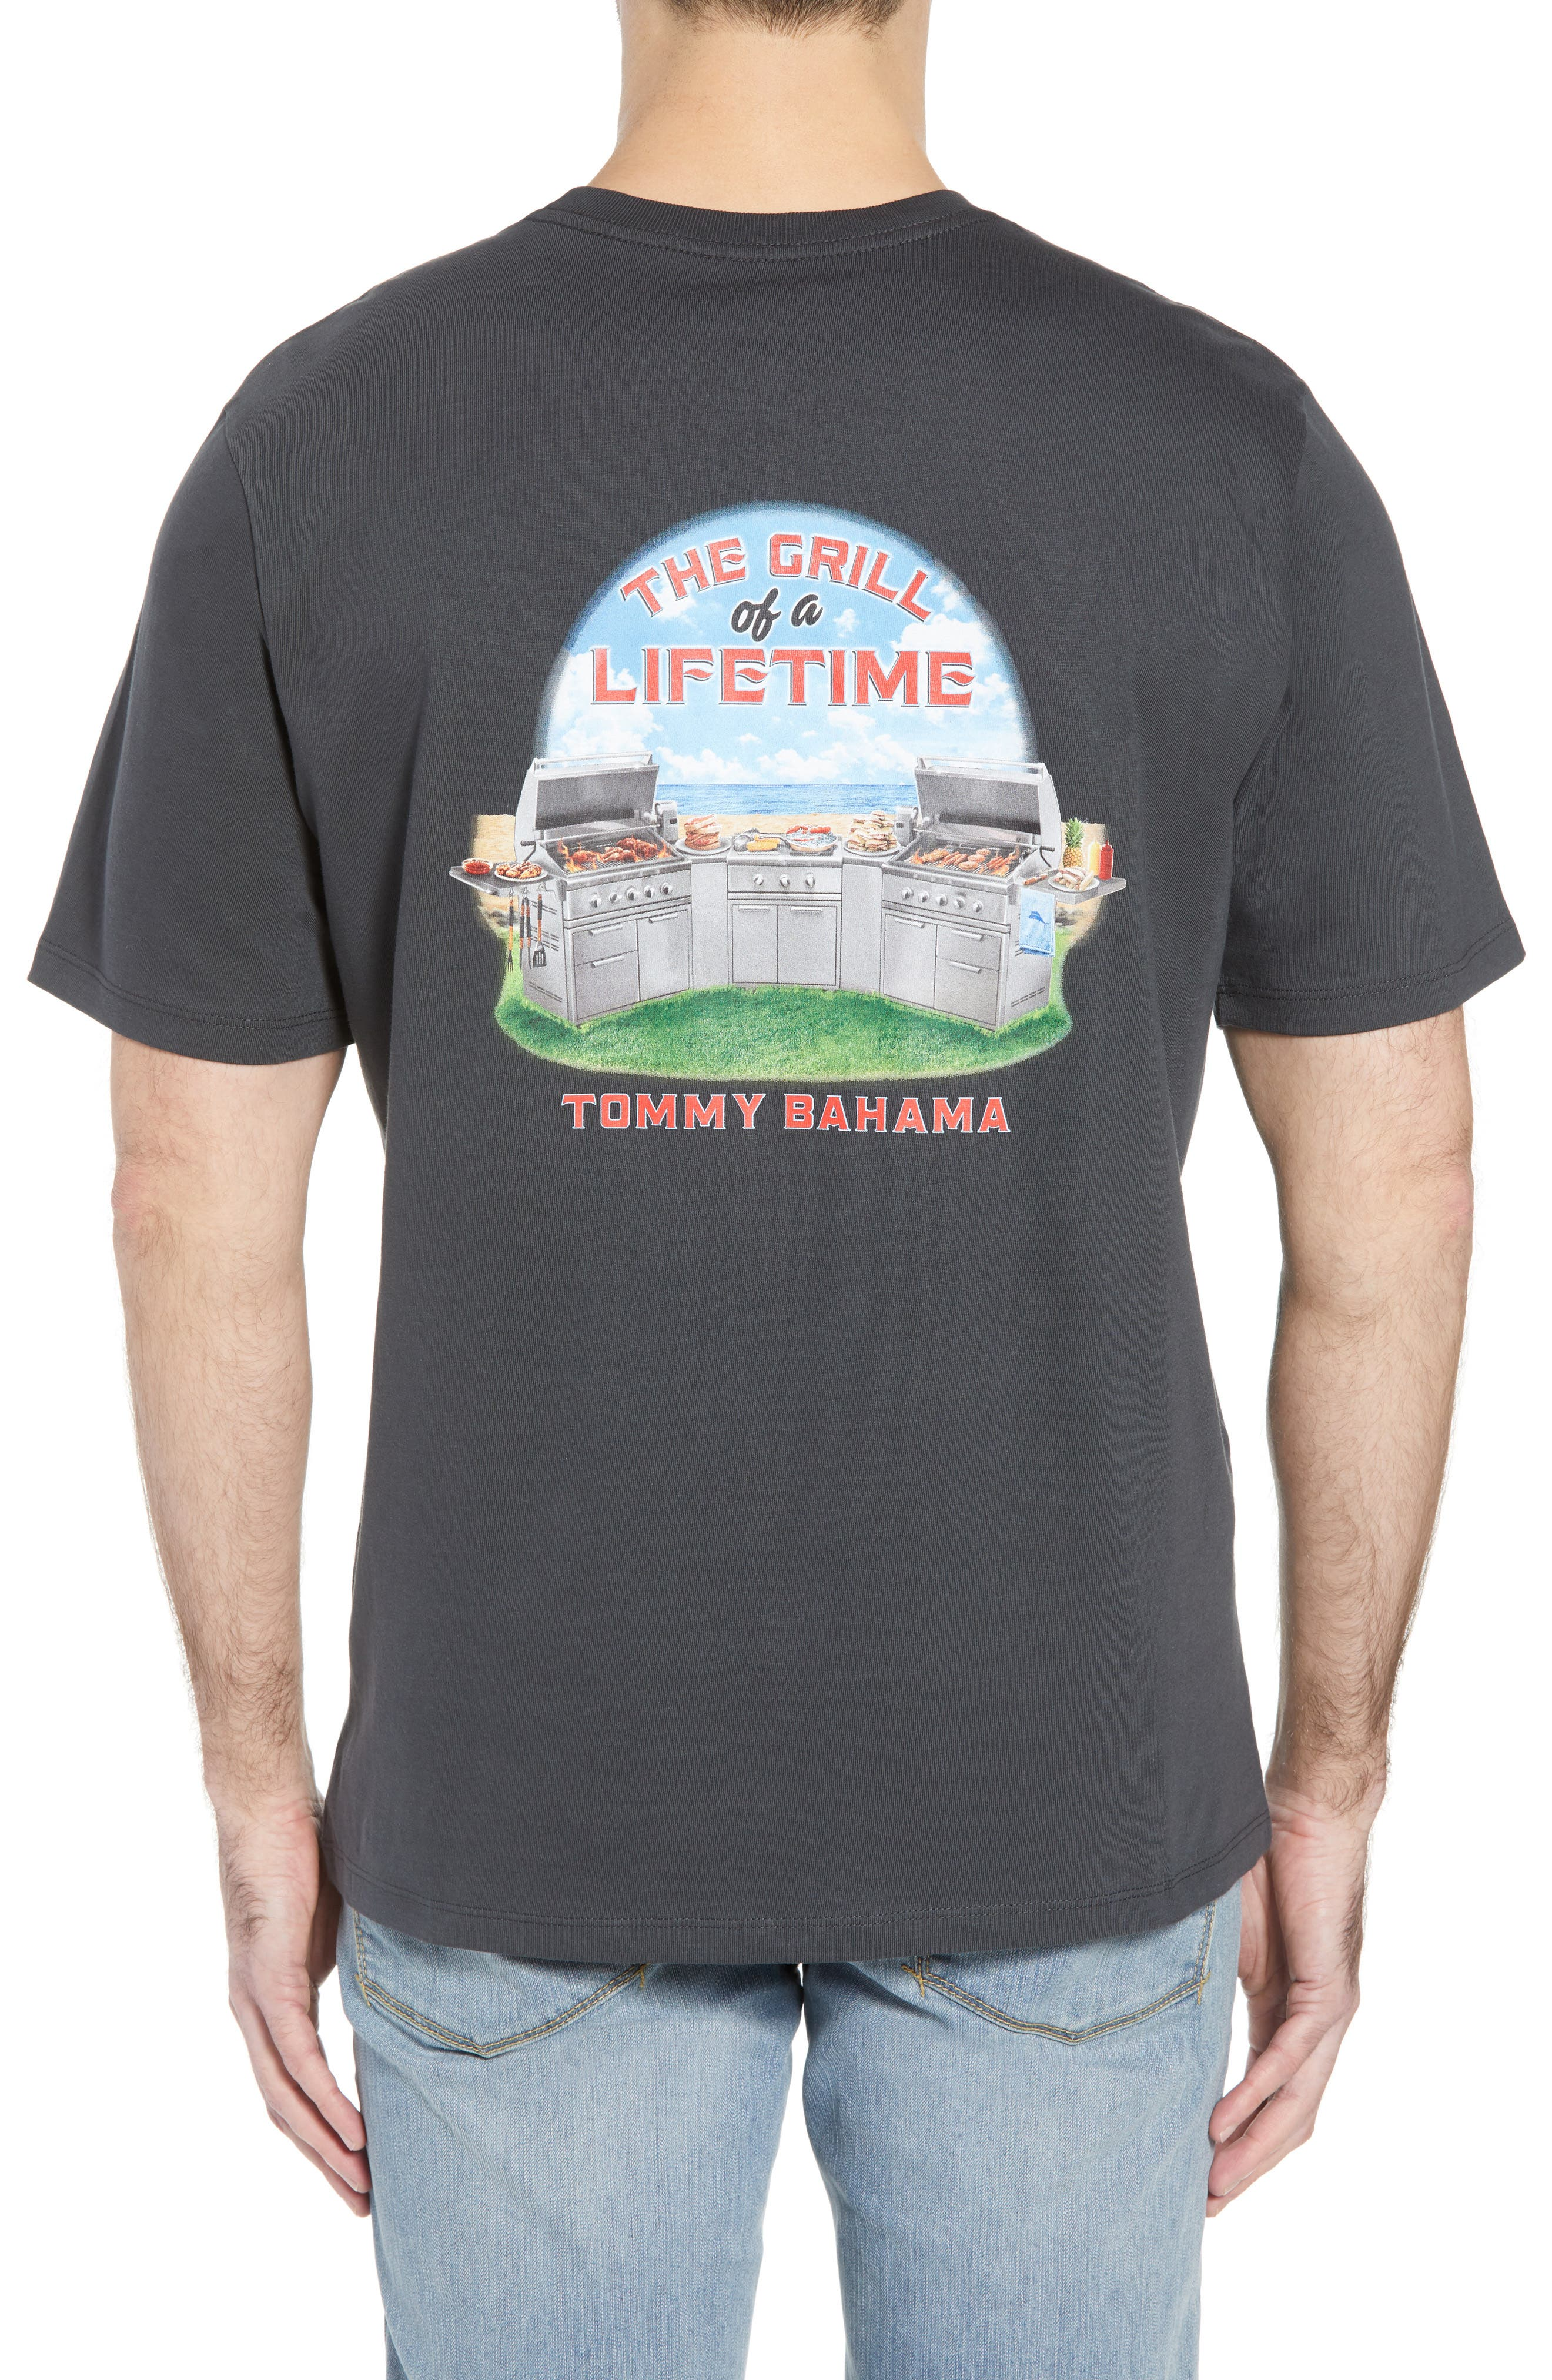 Grill of a Lifetime T-Shirt,                             Alternate thumbnail 2, color,                             001